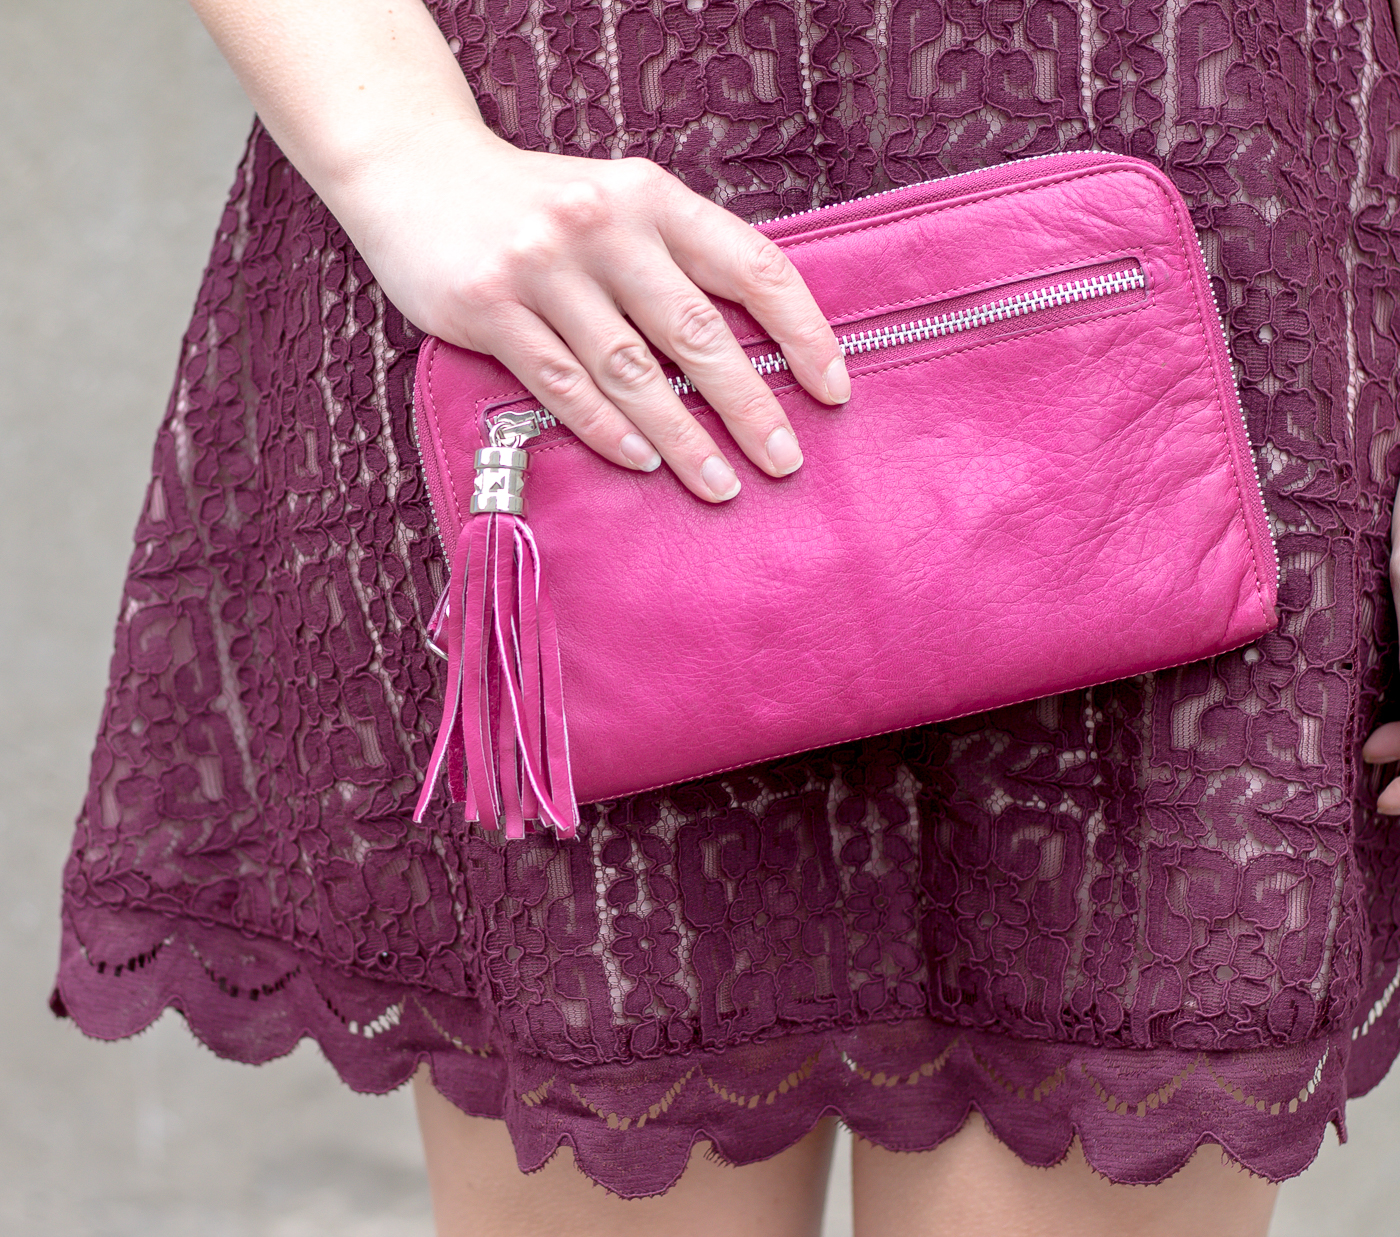 A fushia clutch styled with a lace dress